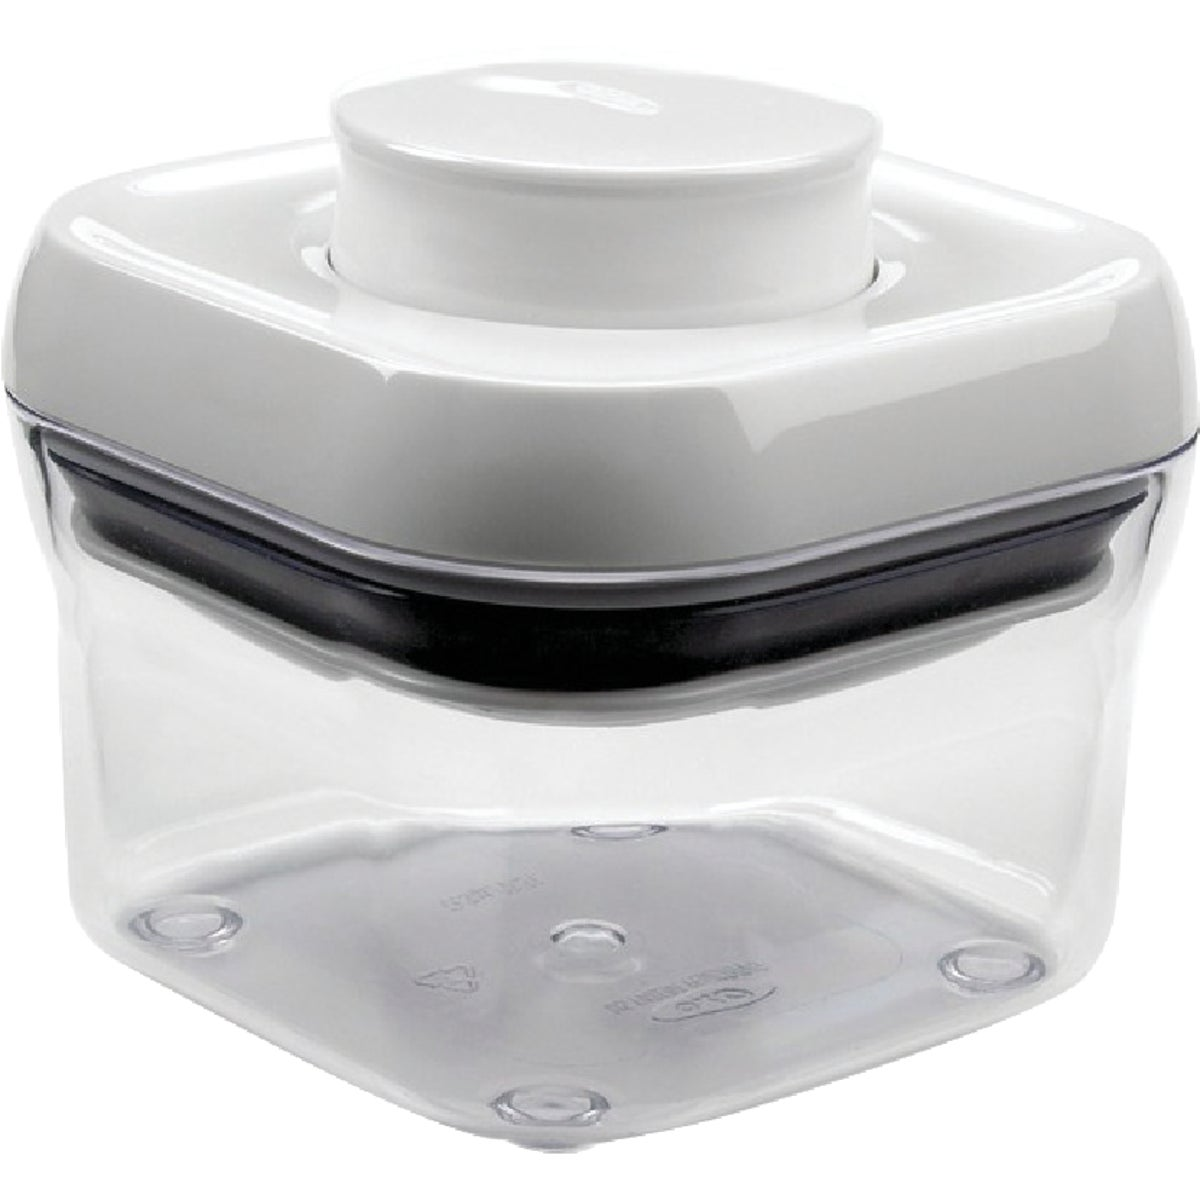 .3QT SQ POP CONTAINER - 1106040 by Oxo International